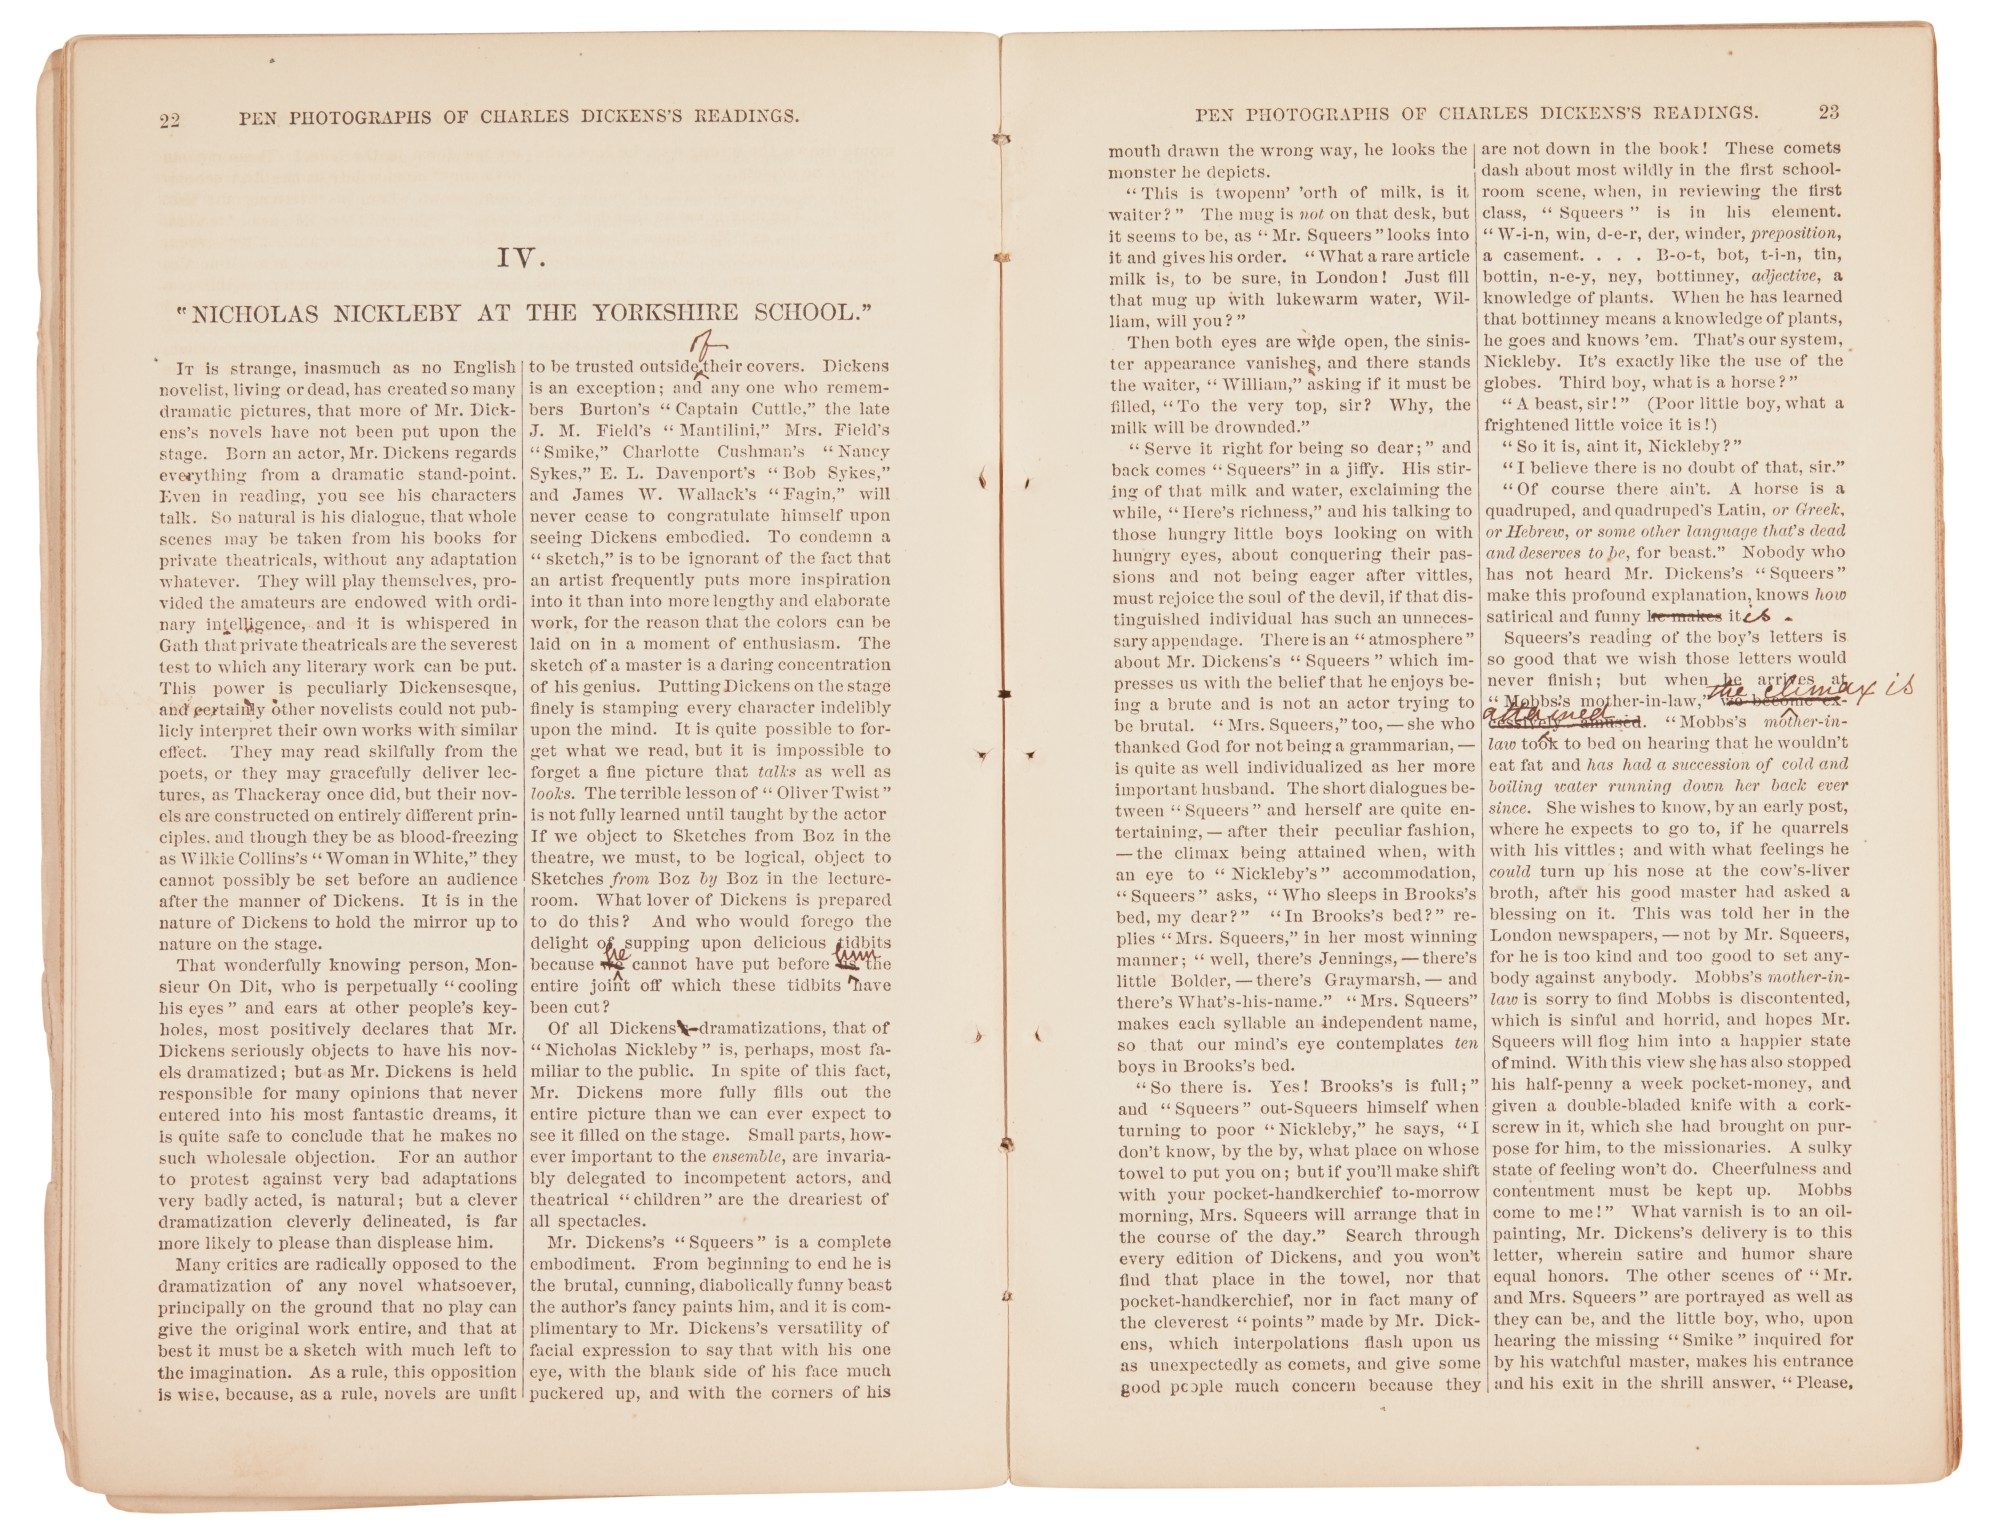 Field, Pen Photographs of Charles Dickens's Readings, 1868, inscribed and corrected by the author